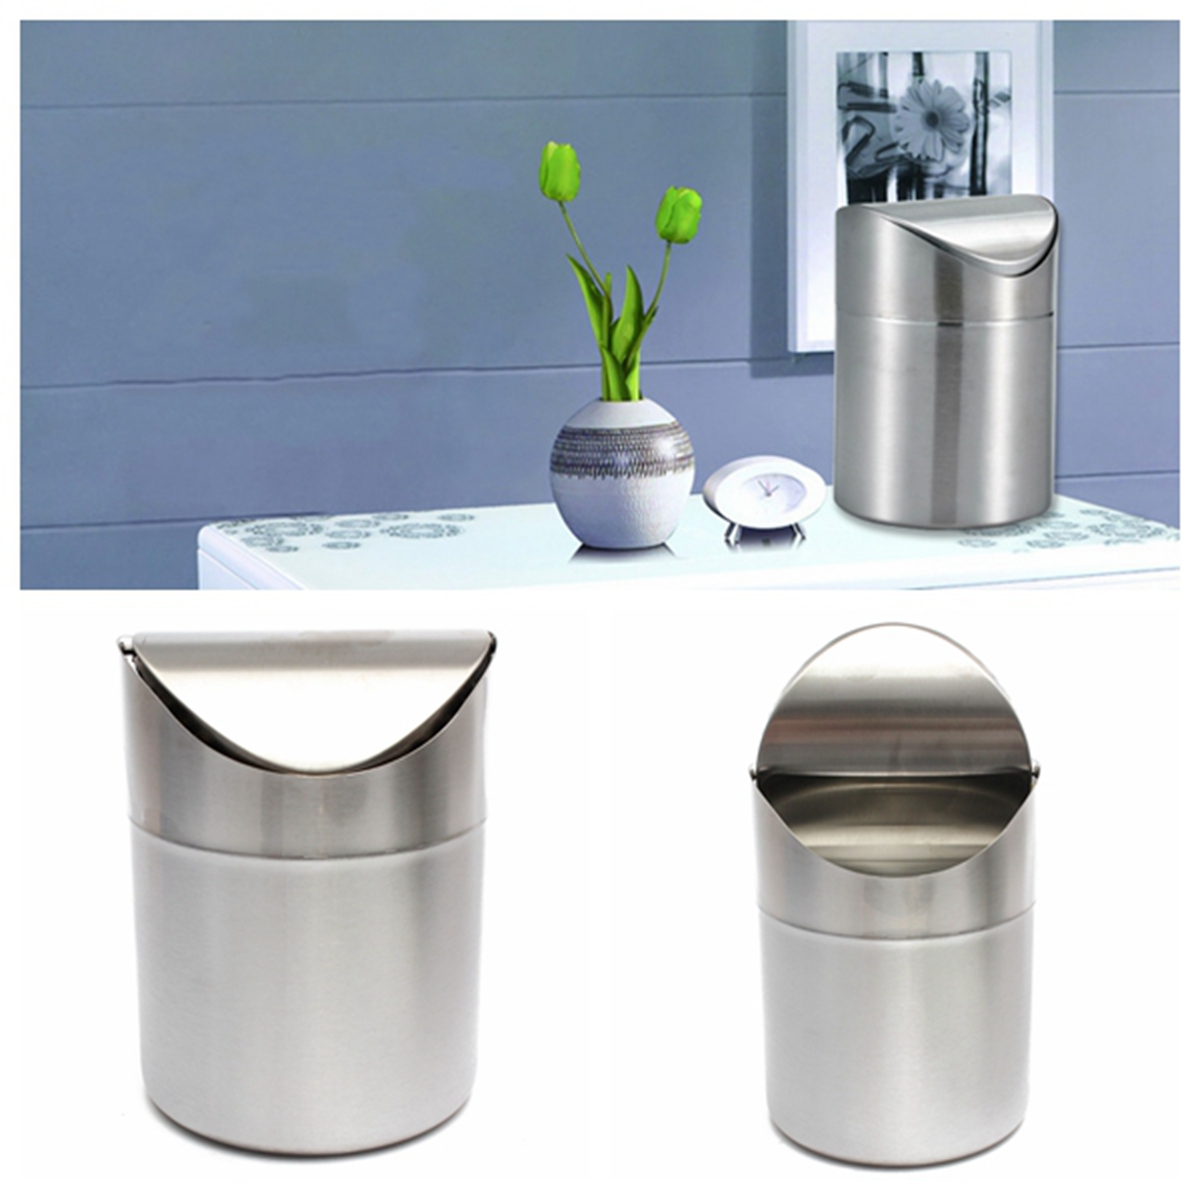 stainless steel kitchen table 1 5L Home Kitchen Table Tidy Stainless Steel